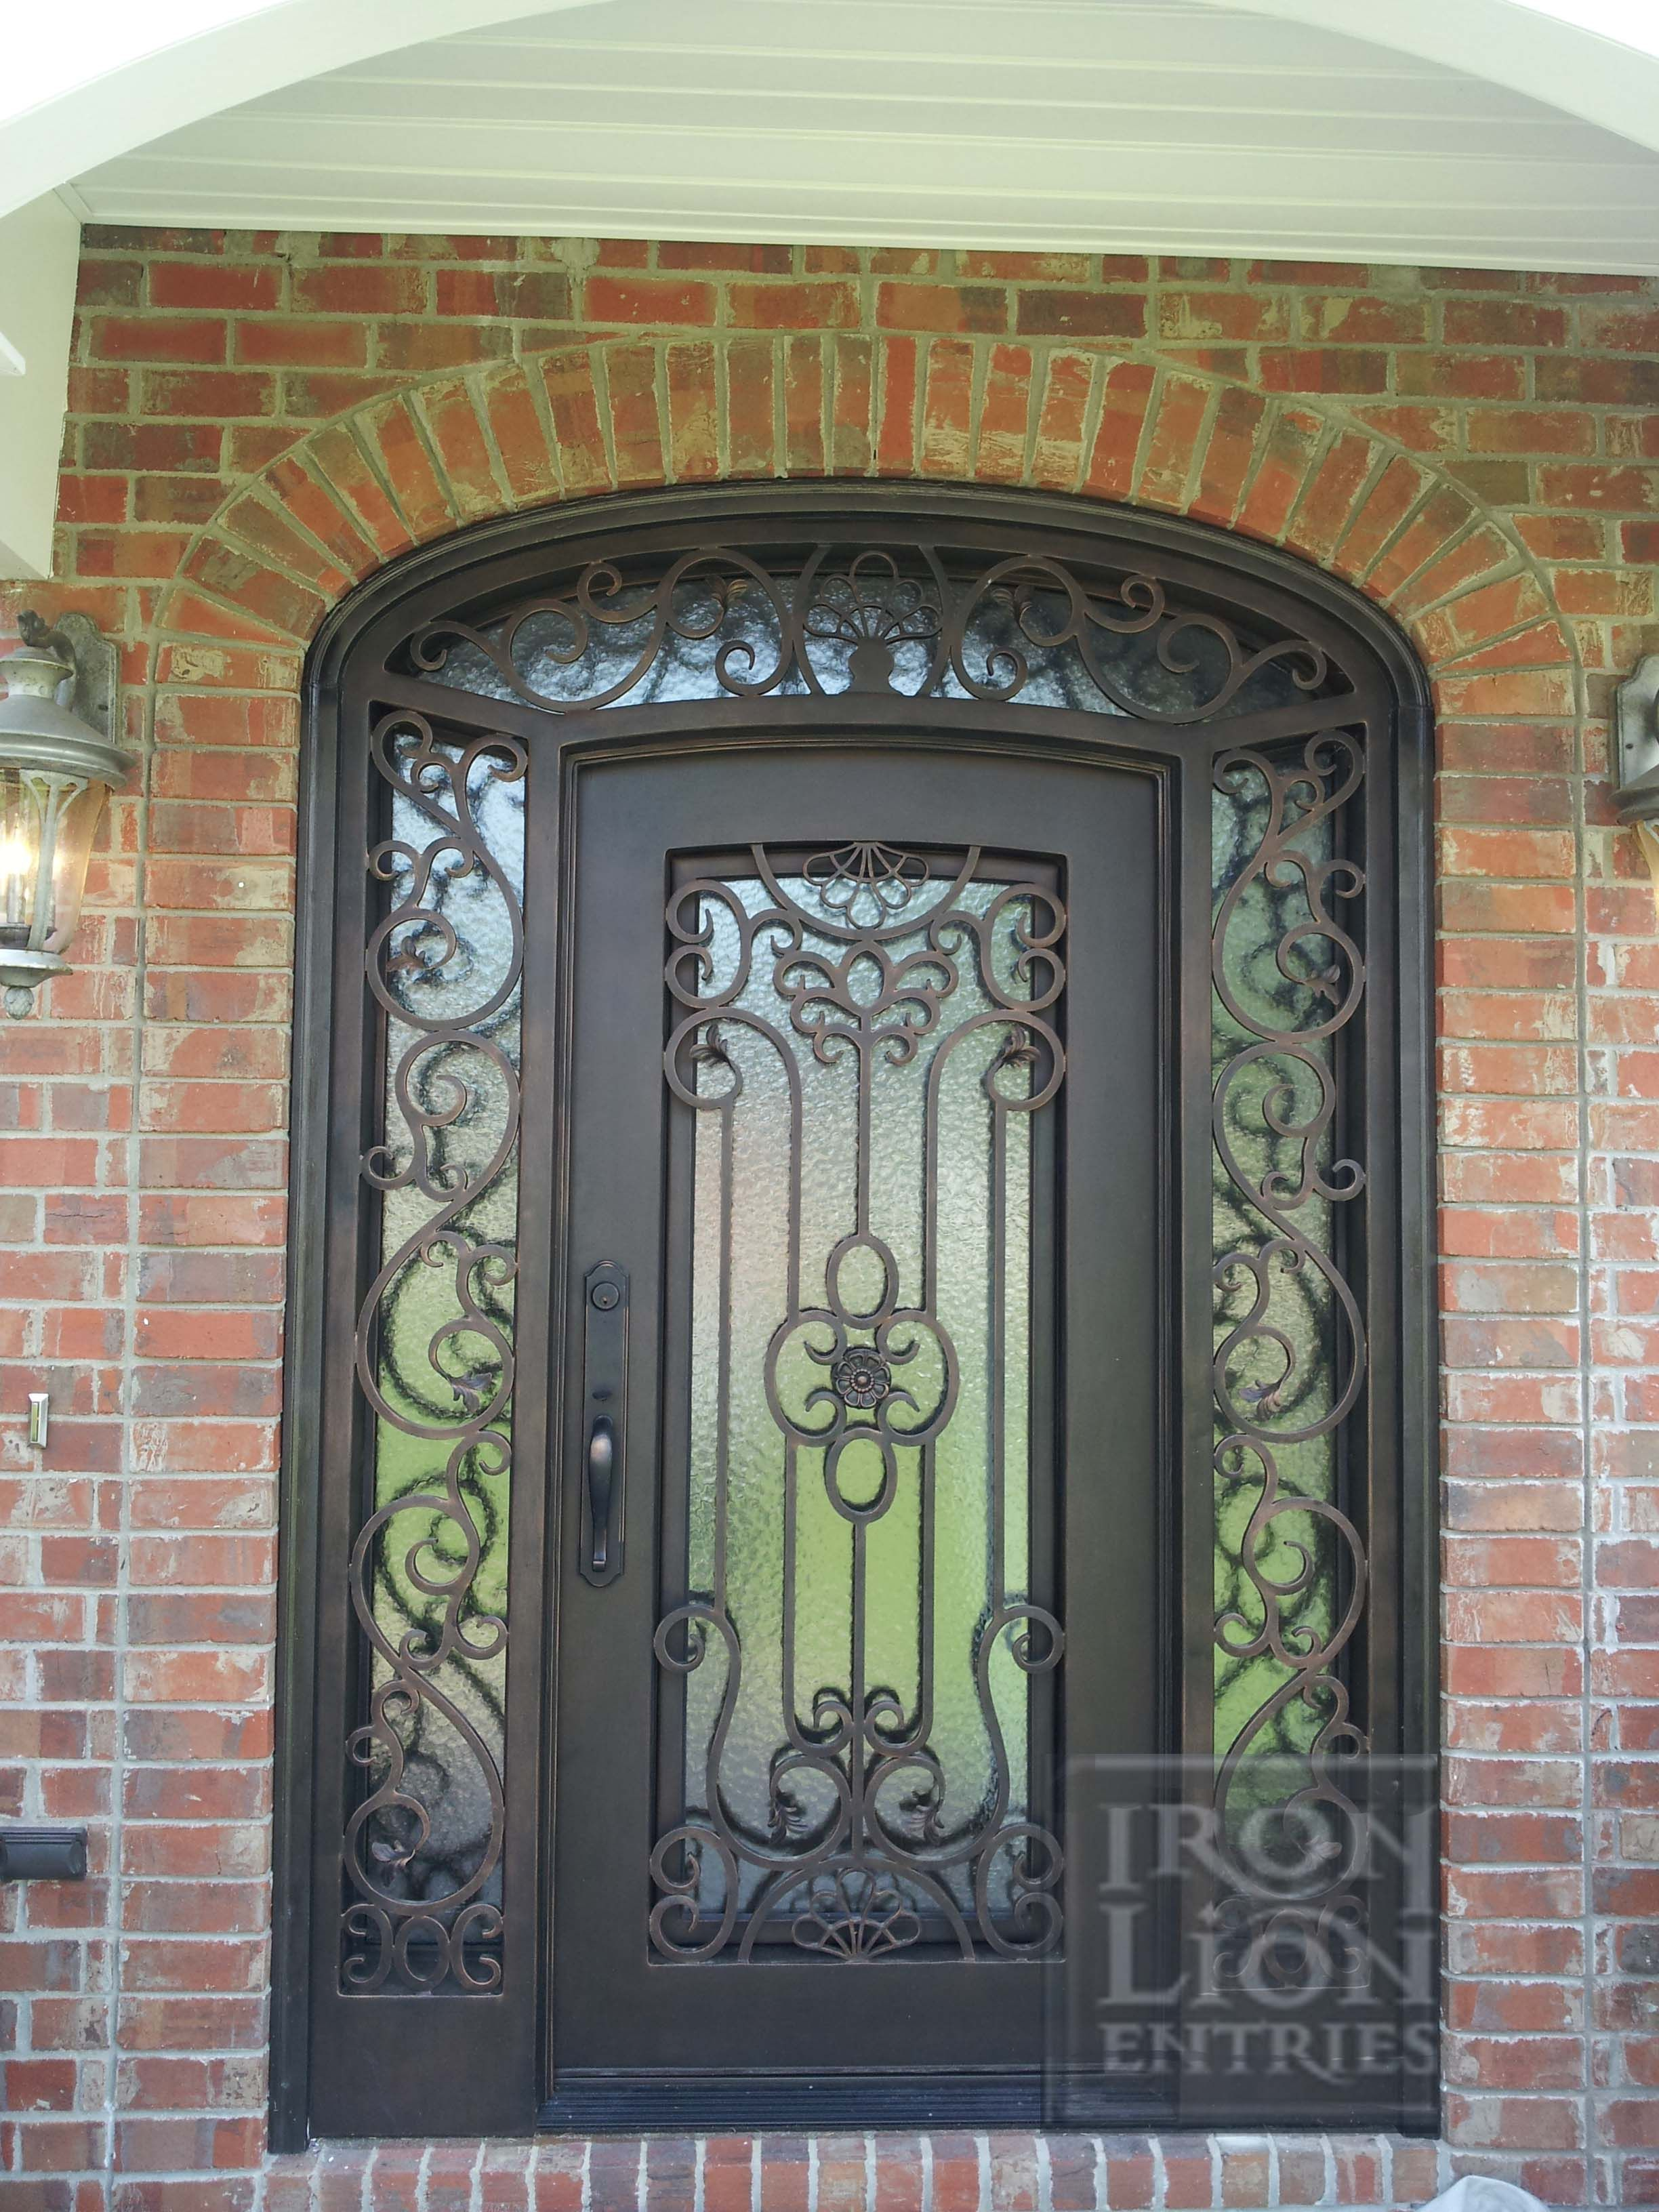 Beau Wrought Iron Entry Door, IronEntryDoor, Iron Door. Custom Single Door With  Sidelights